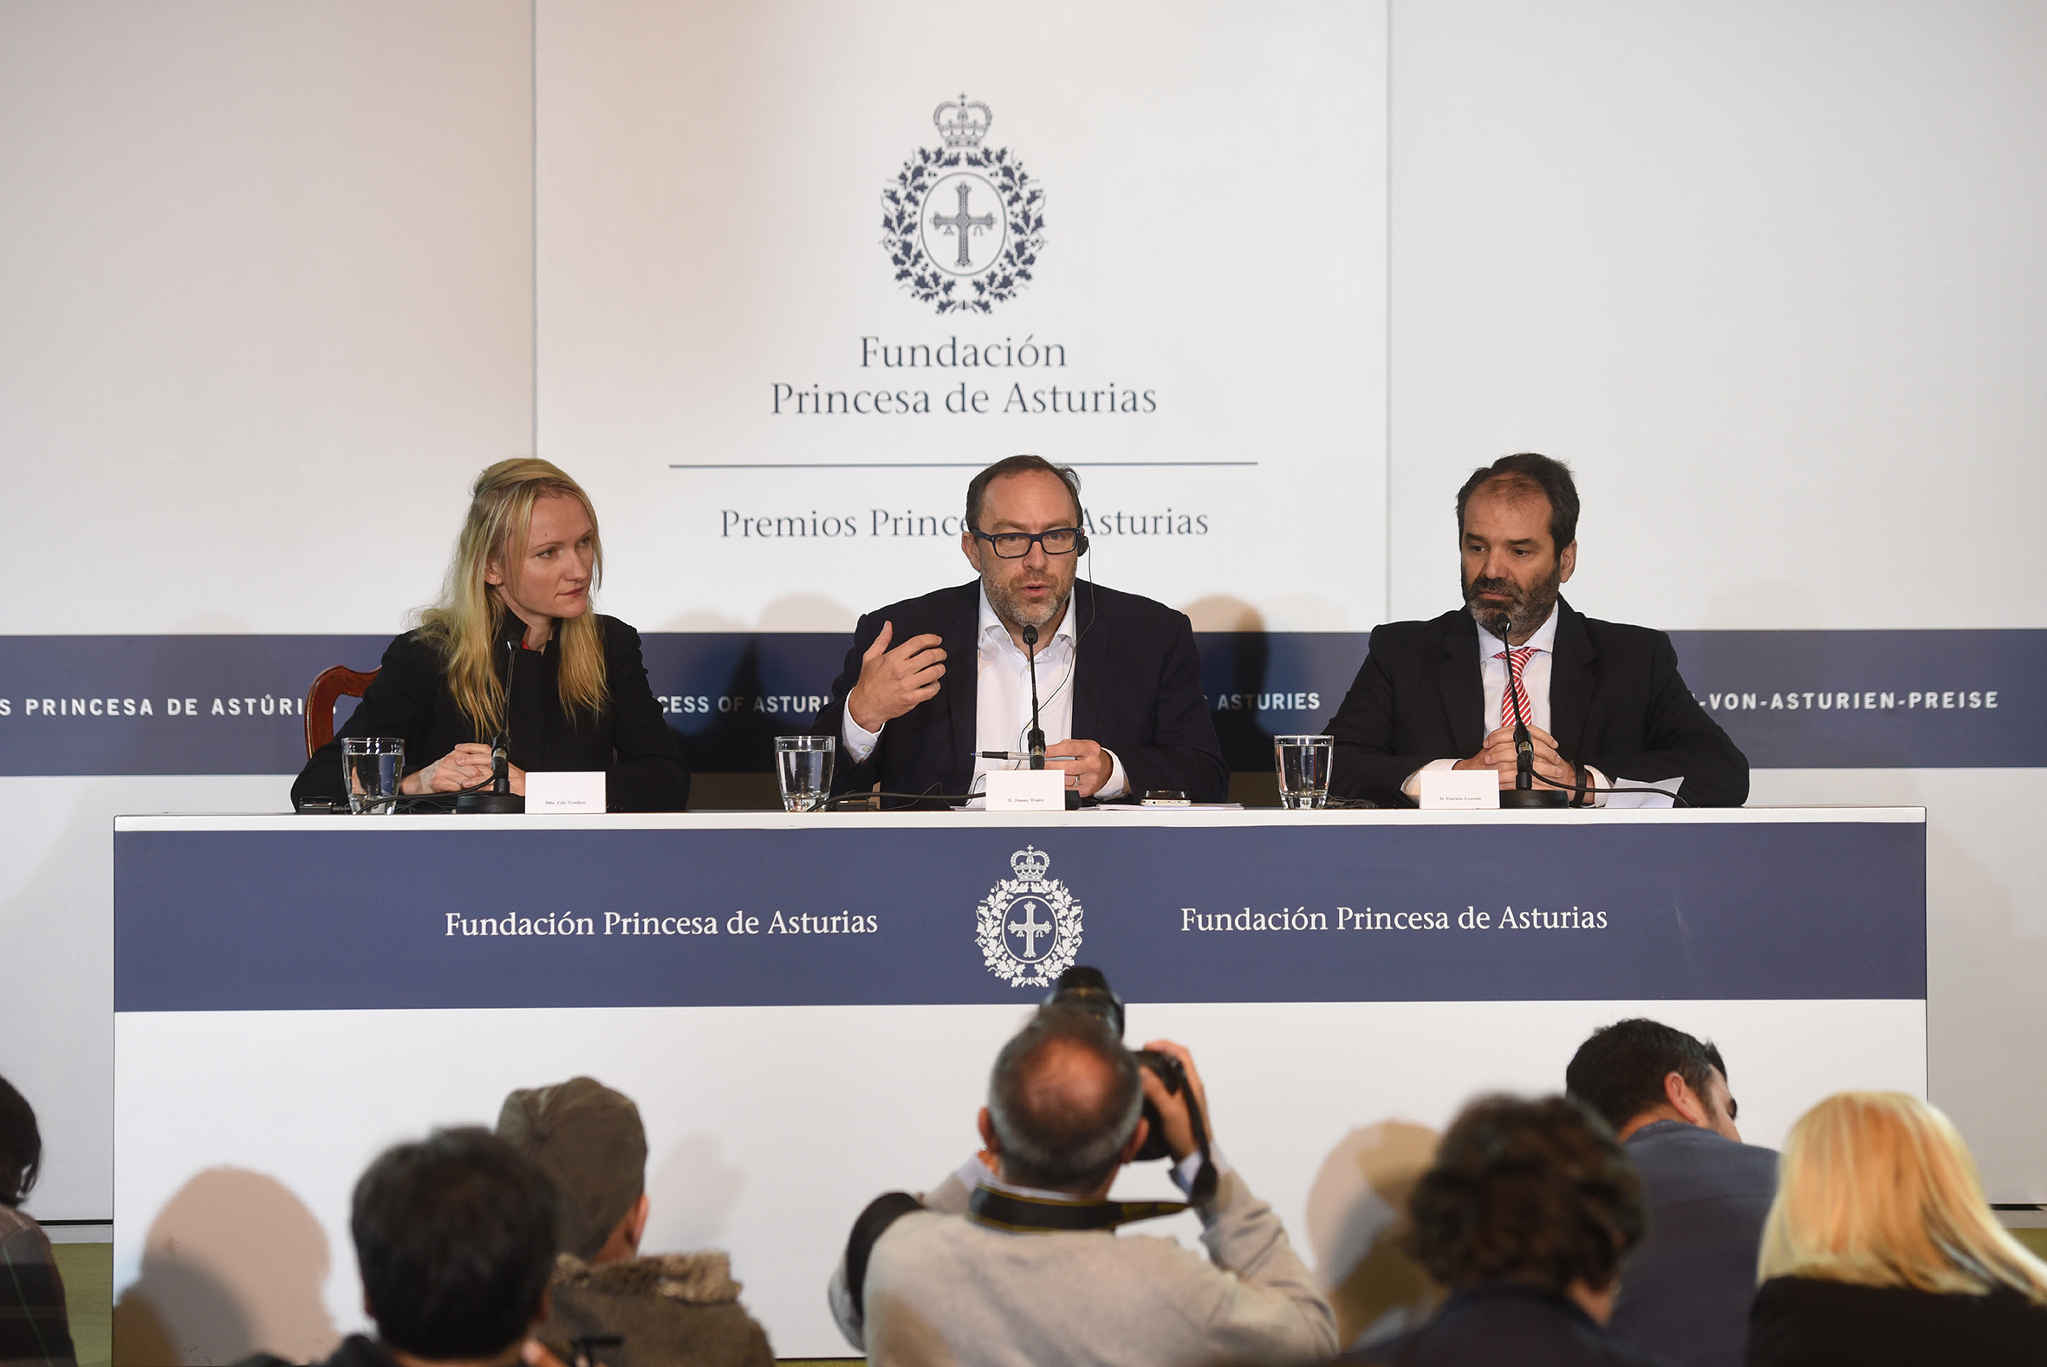 Press conference with Jimmy Wales, Ravan Jaglar, Jeevan José, Patricio y Lourdes